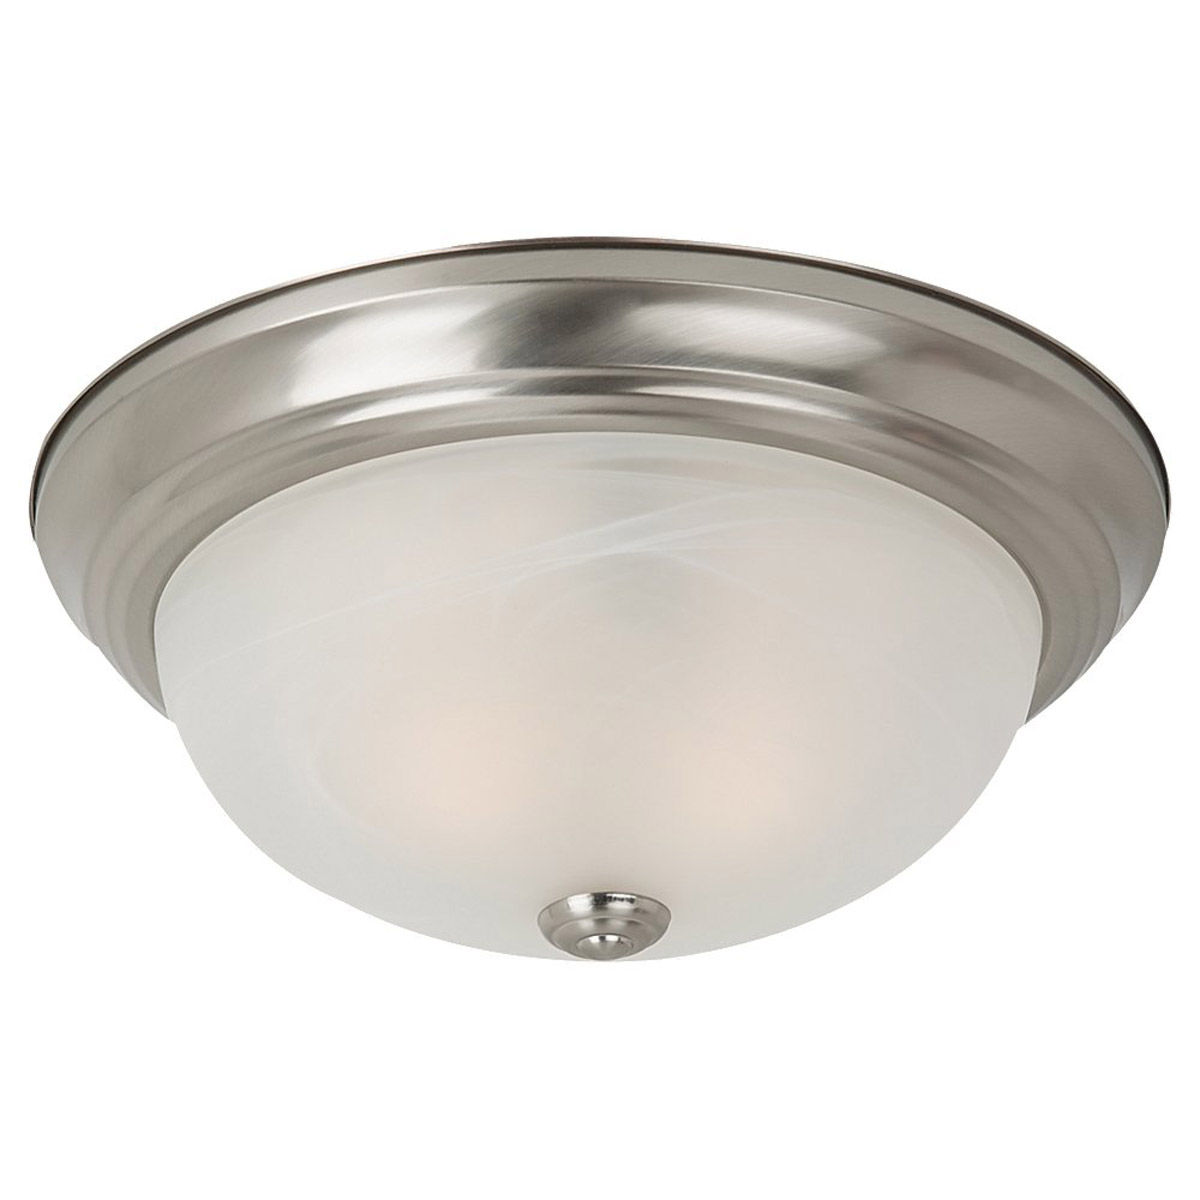 Sea Gull Lighting Windgate 2 Light Flush Mount in Brushed Nickel 75942BLE-962